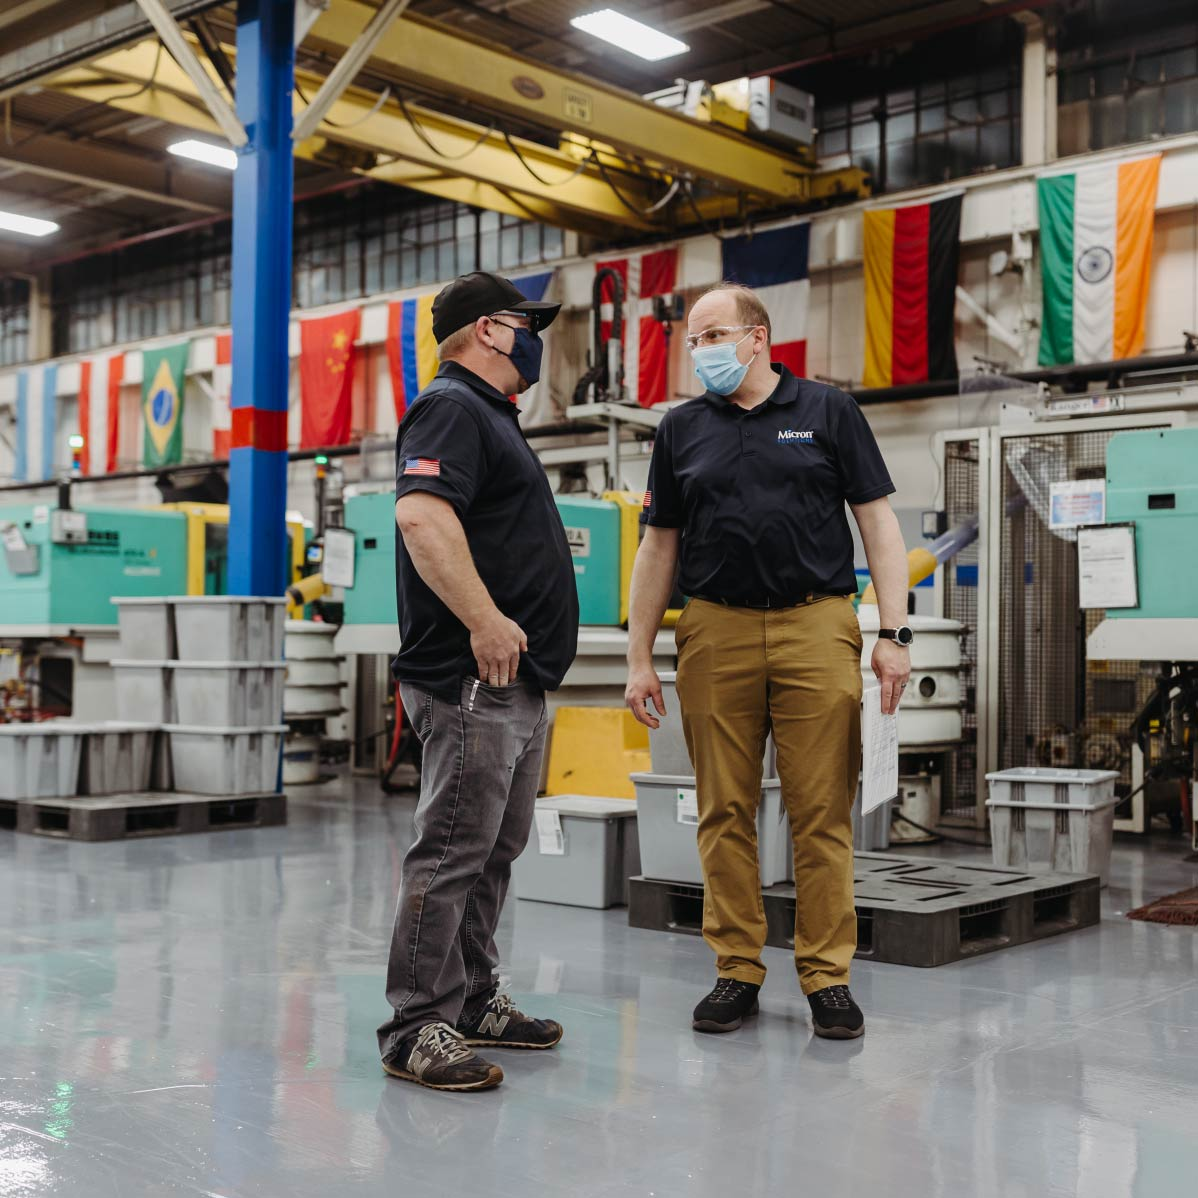 Two men talk to each other in front of a line of Arburg injection molding machines